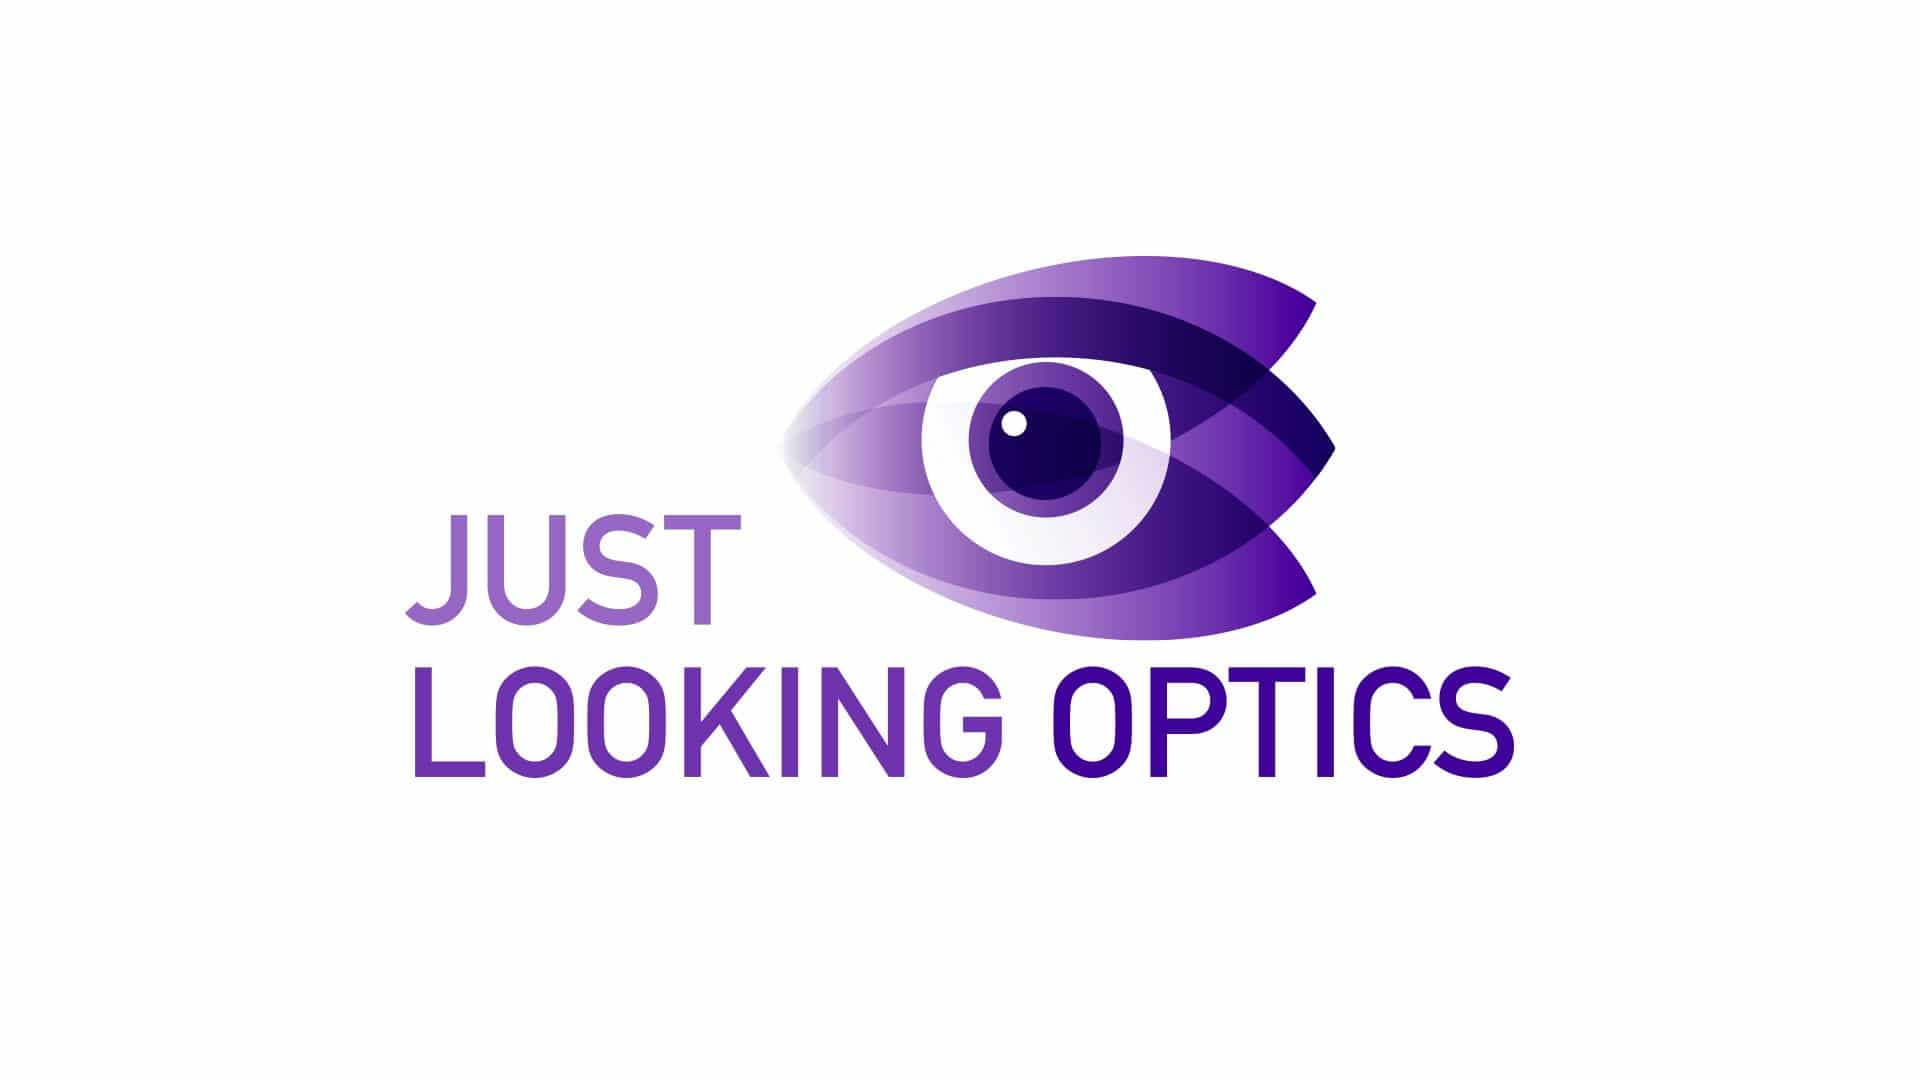 Just Looking Optics